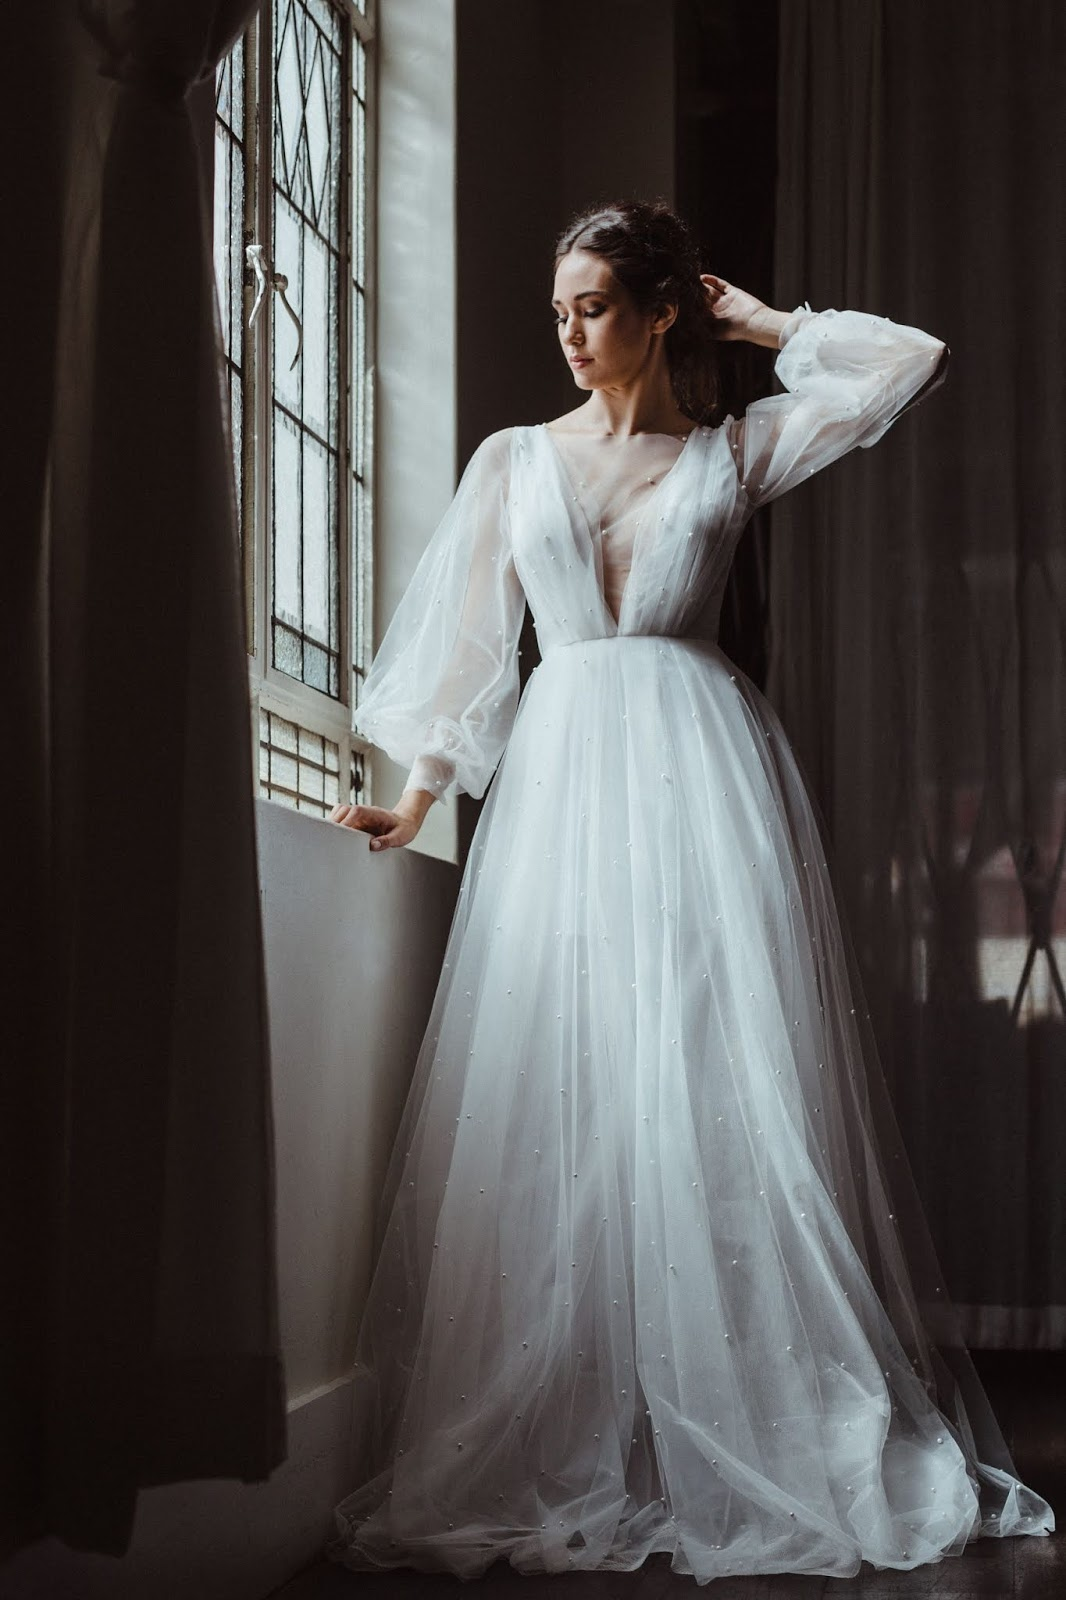 romantic bridal gowns australian designer images by jaz anderson photography